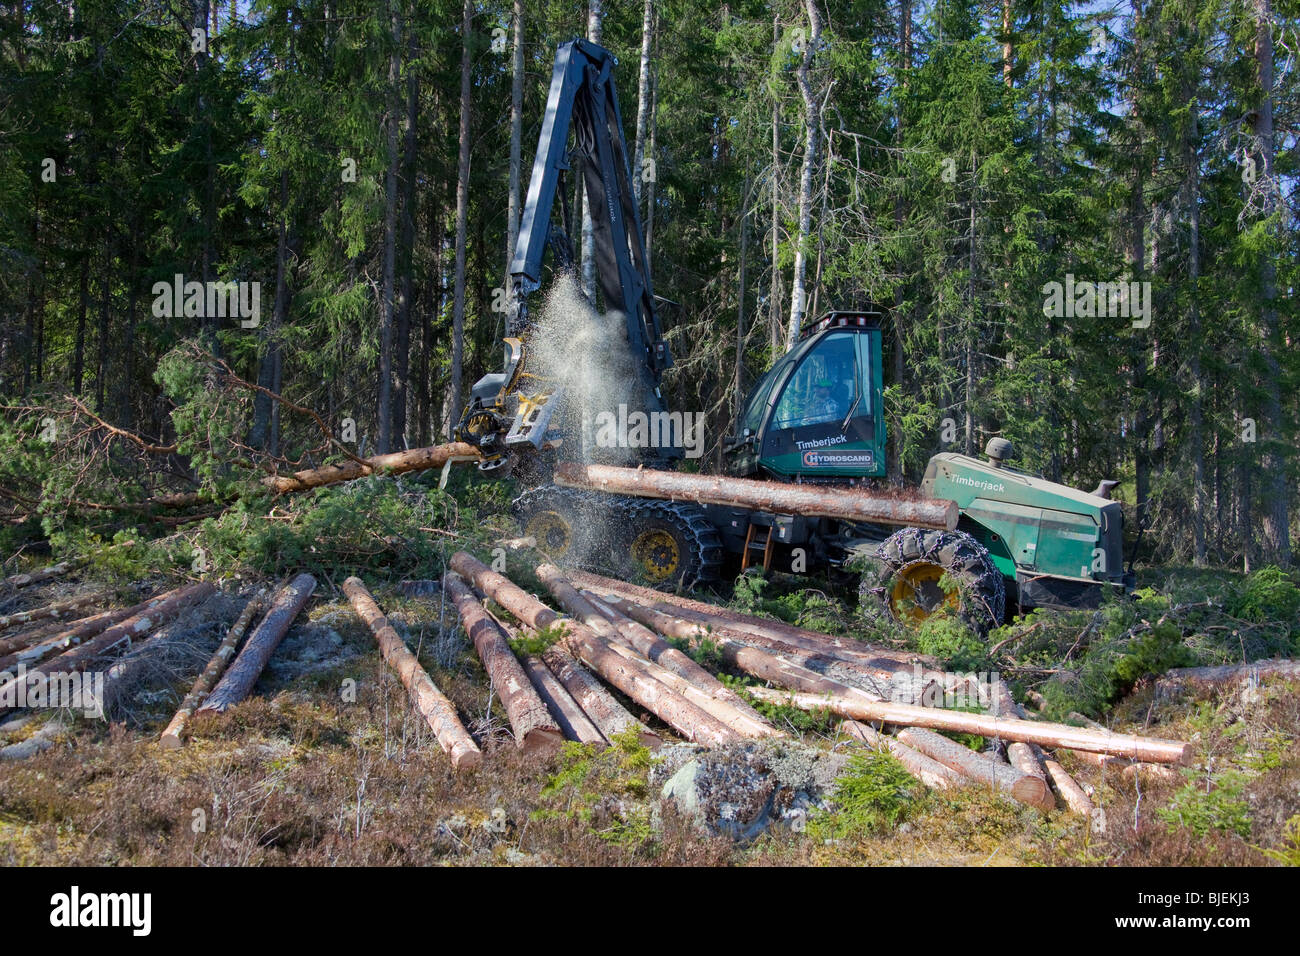 Harvester at work. - Stock Image